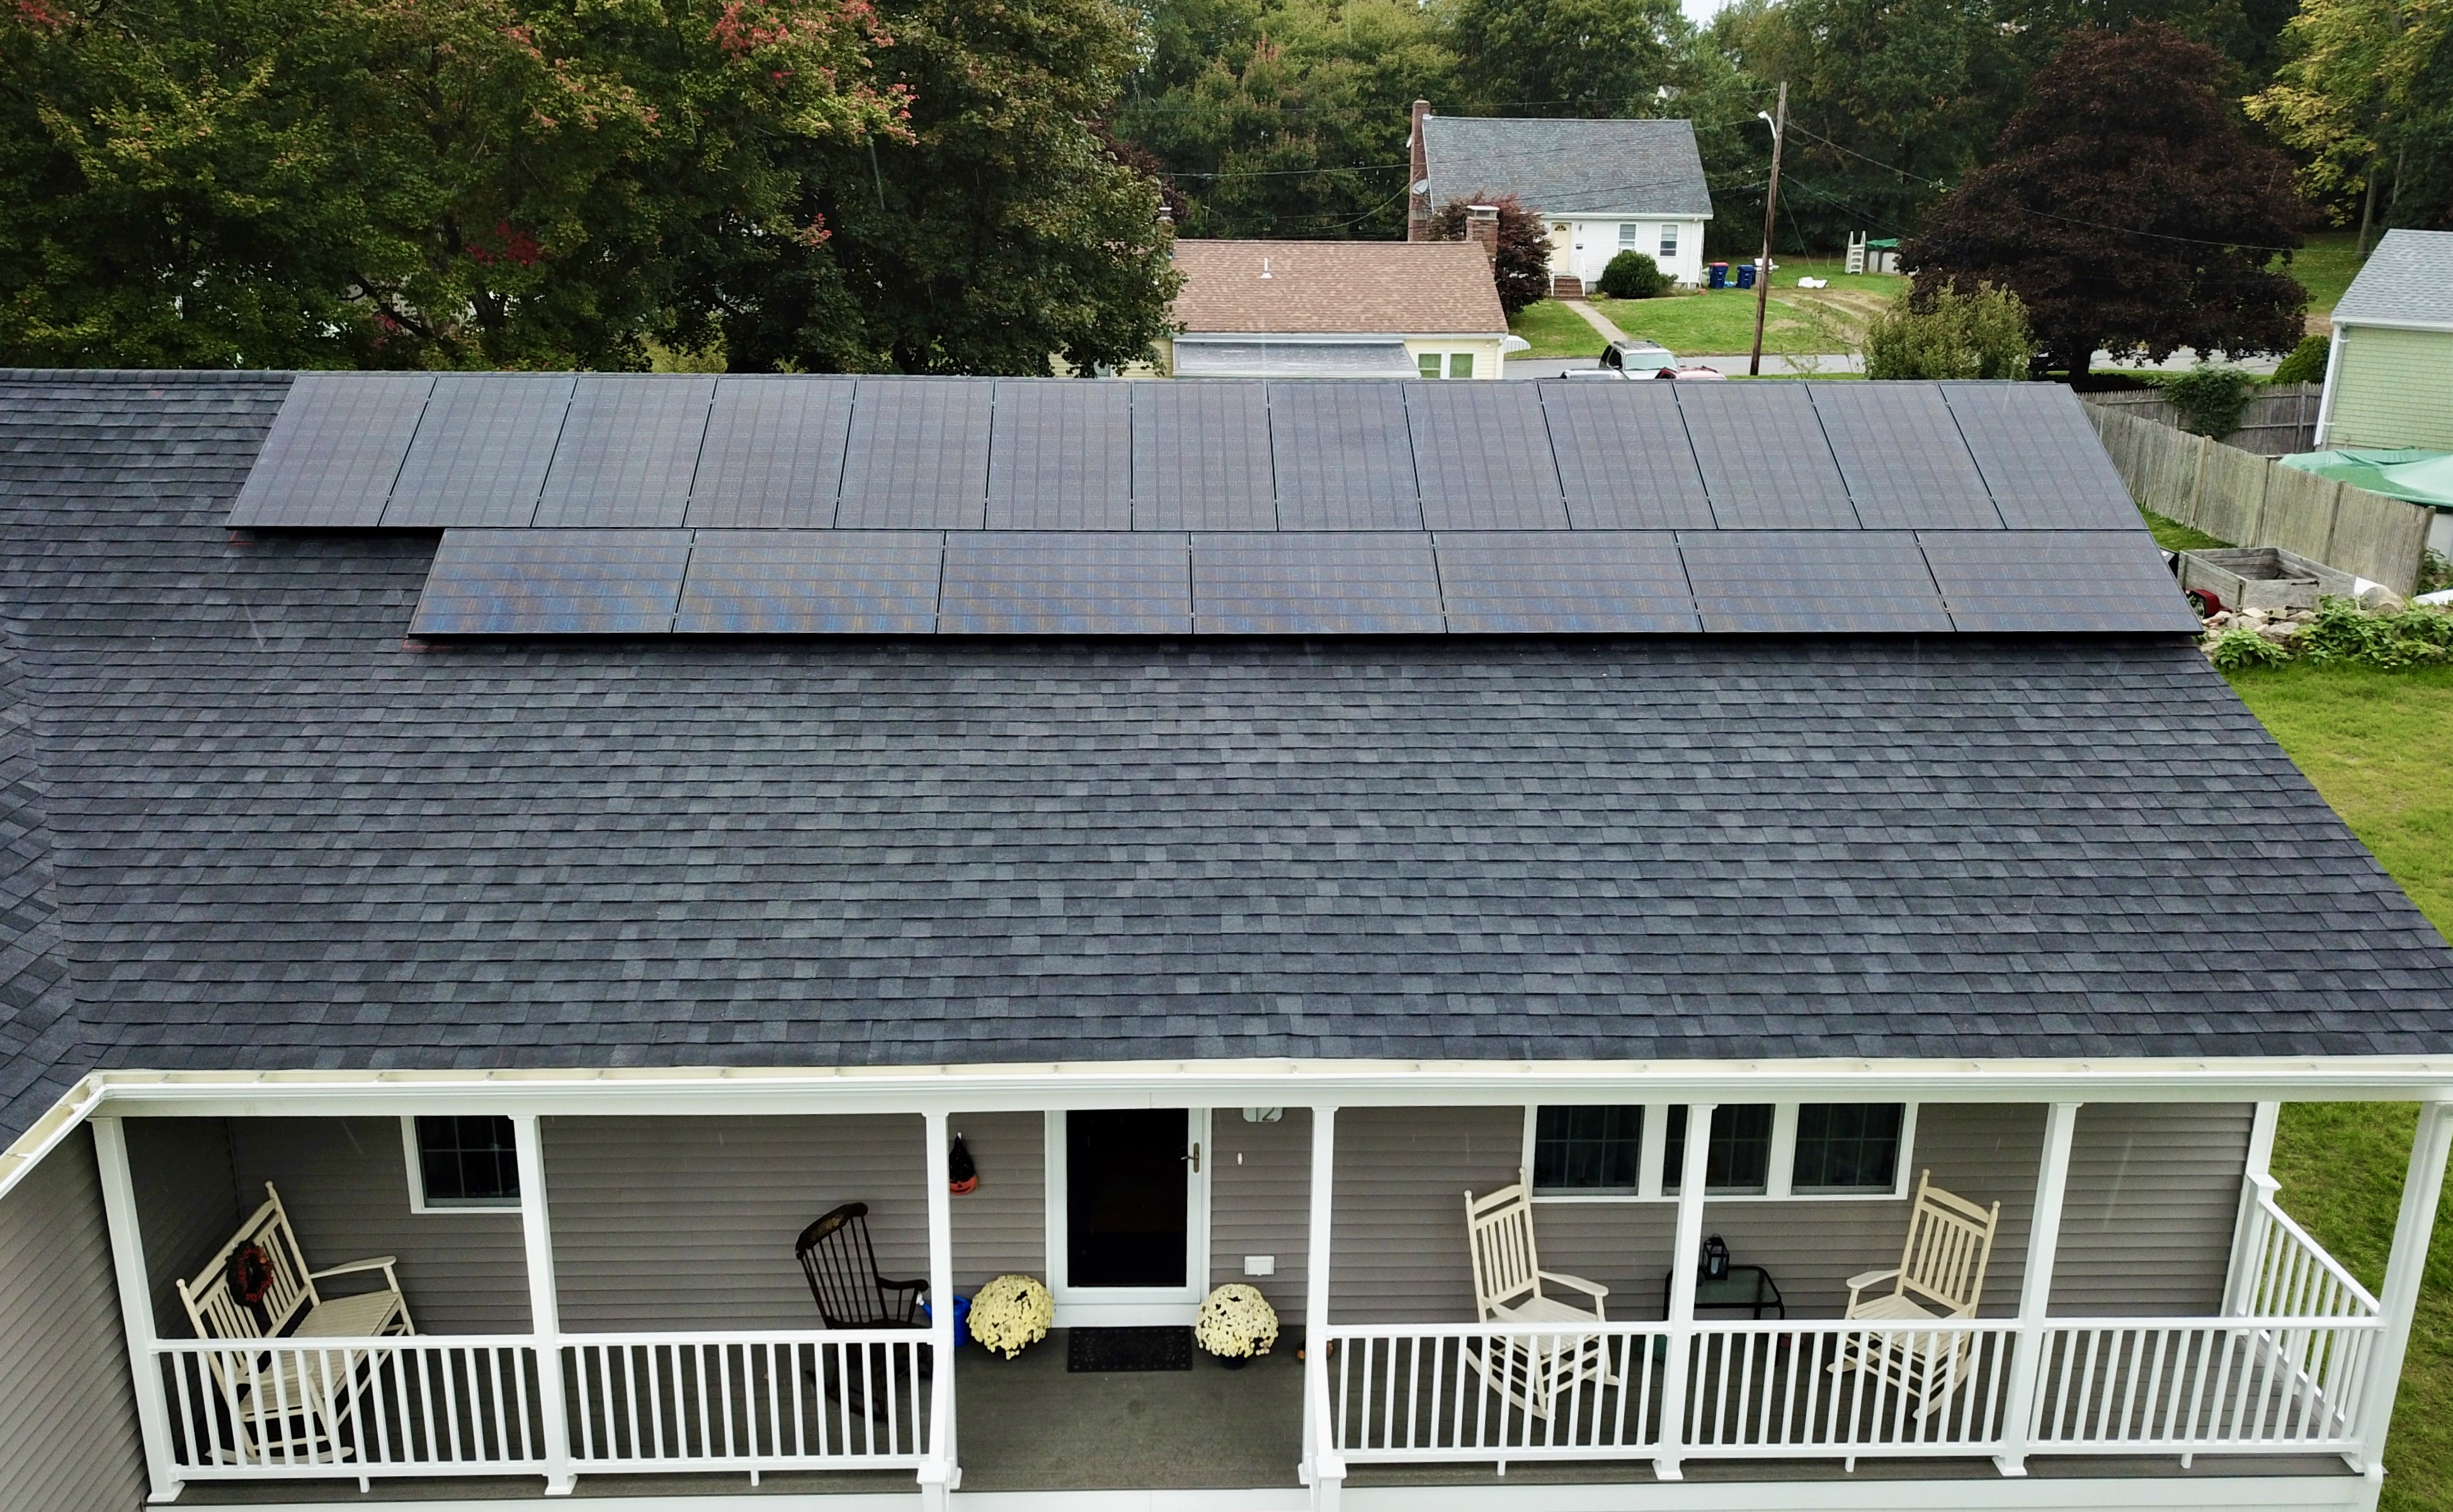 Fairhaven residential rooftop solar installation by My Generation Energy